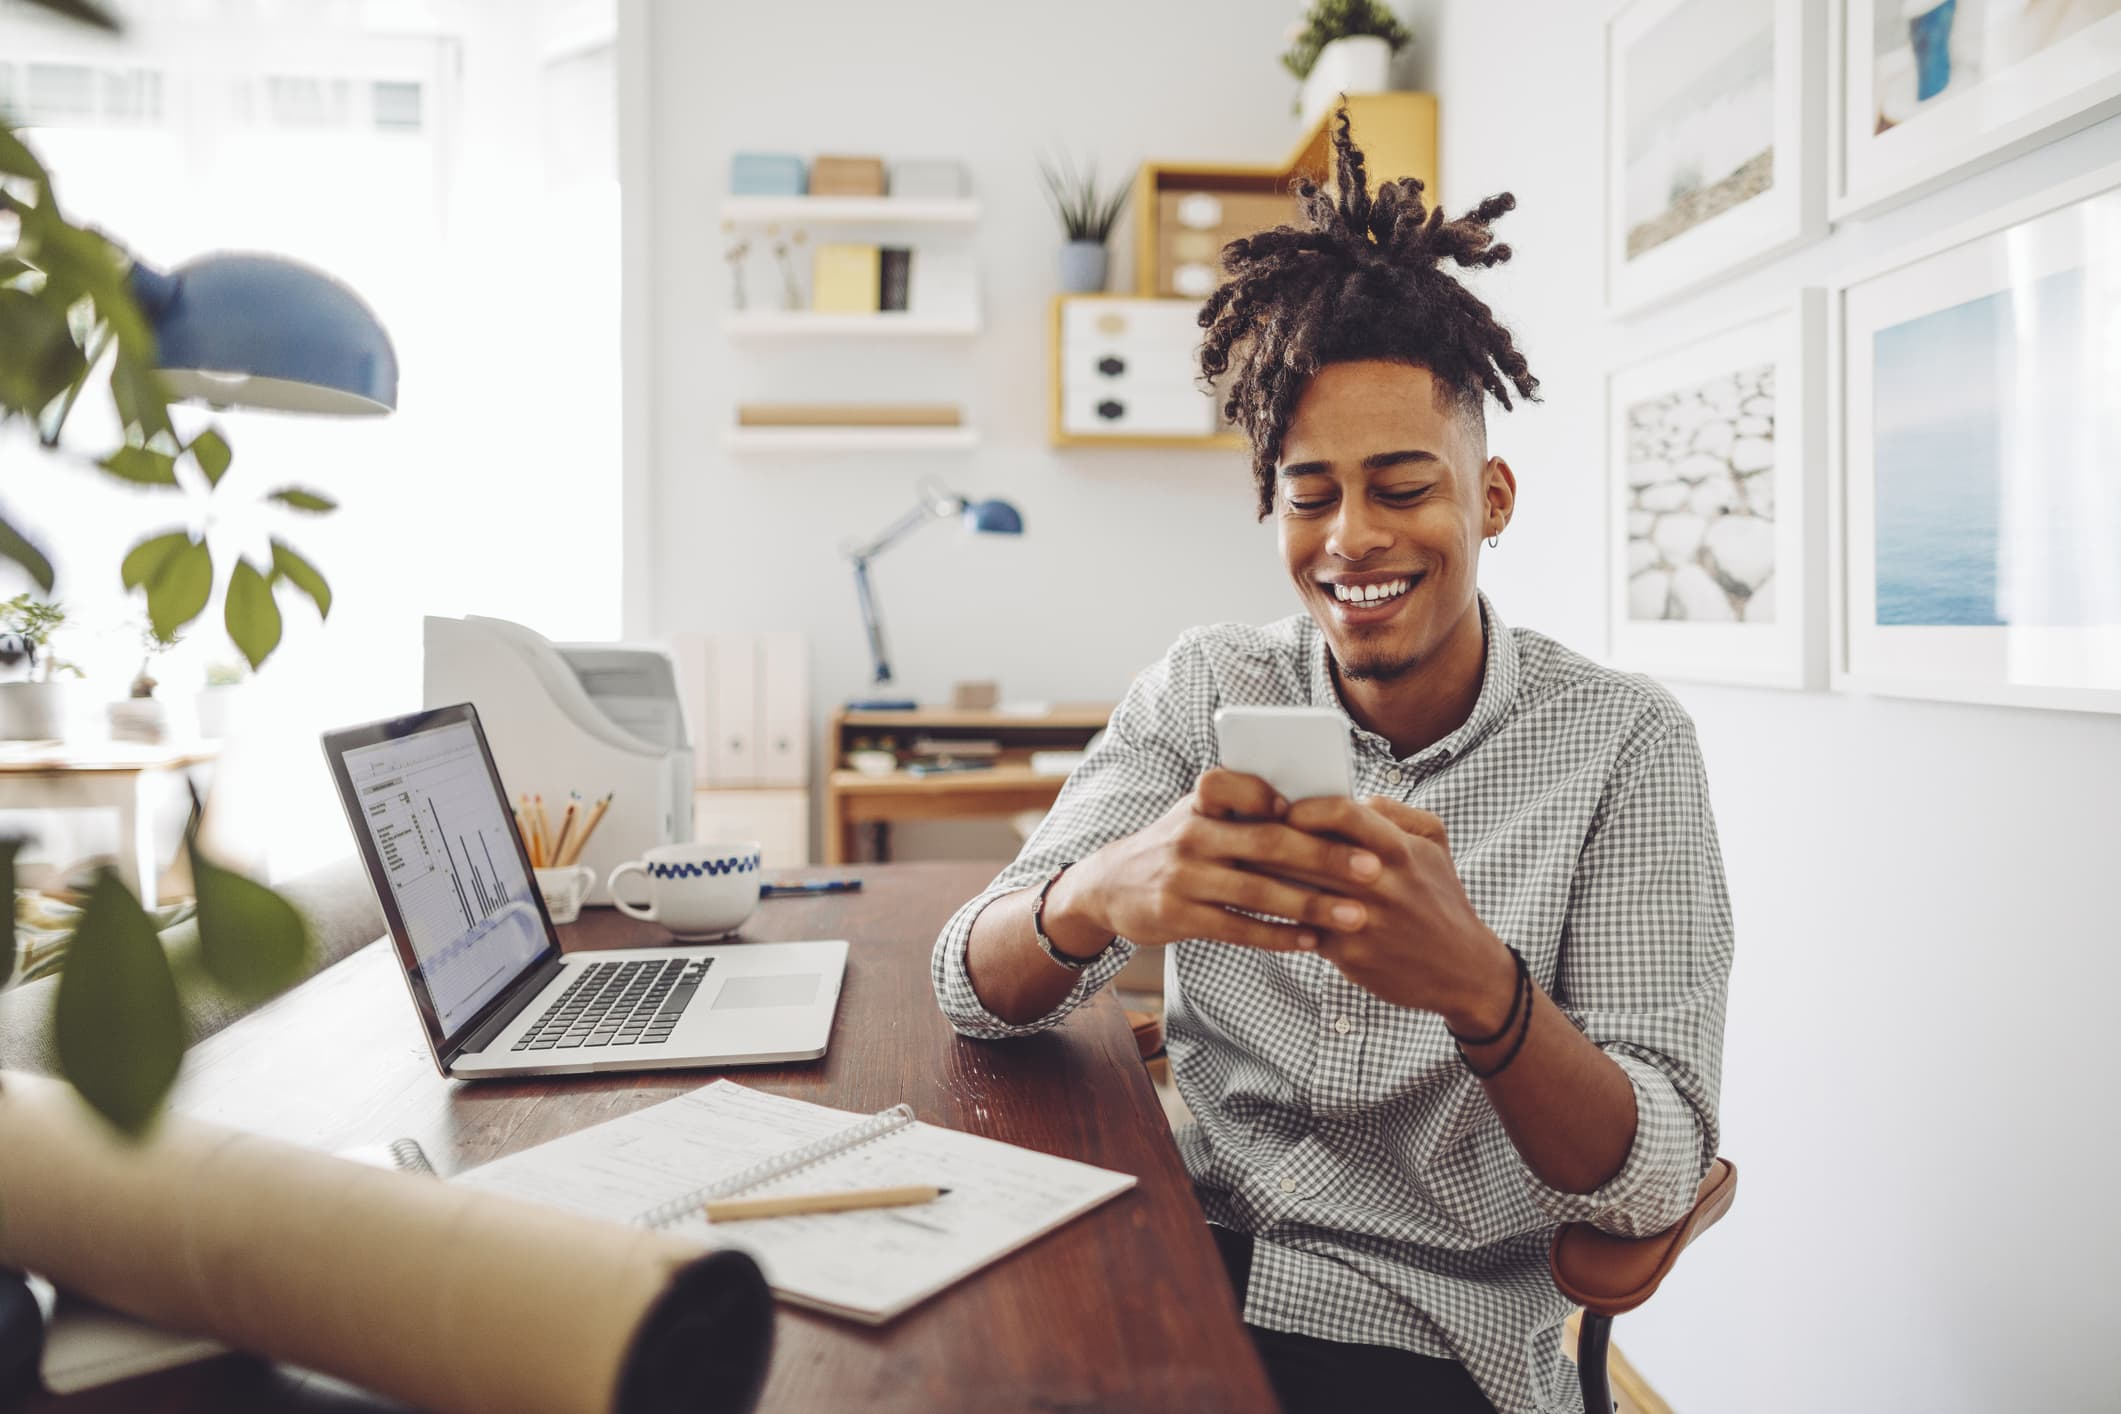 Getting financial advice on social media can be tricky. Here's how to navigate it